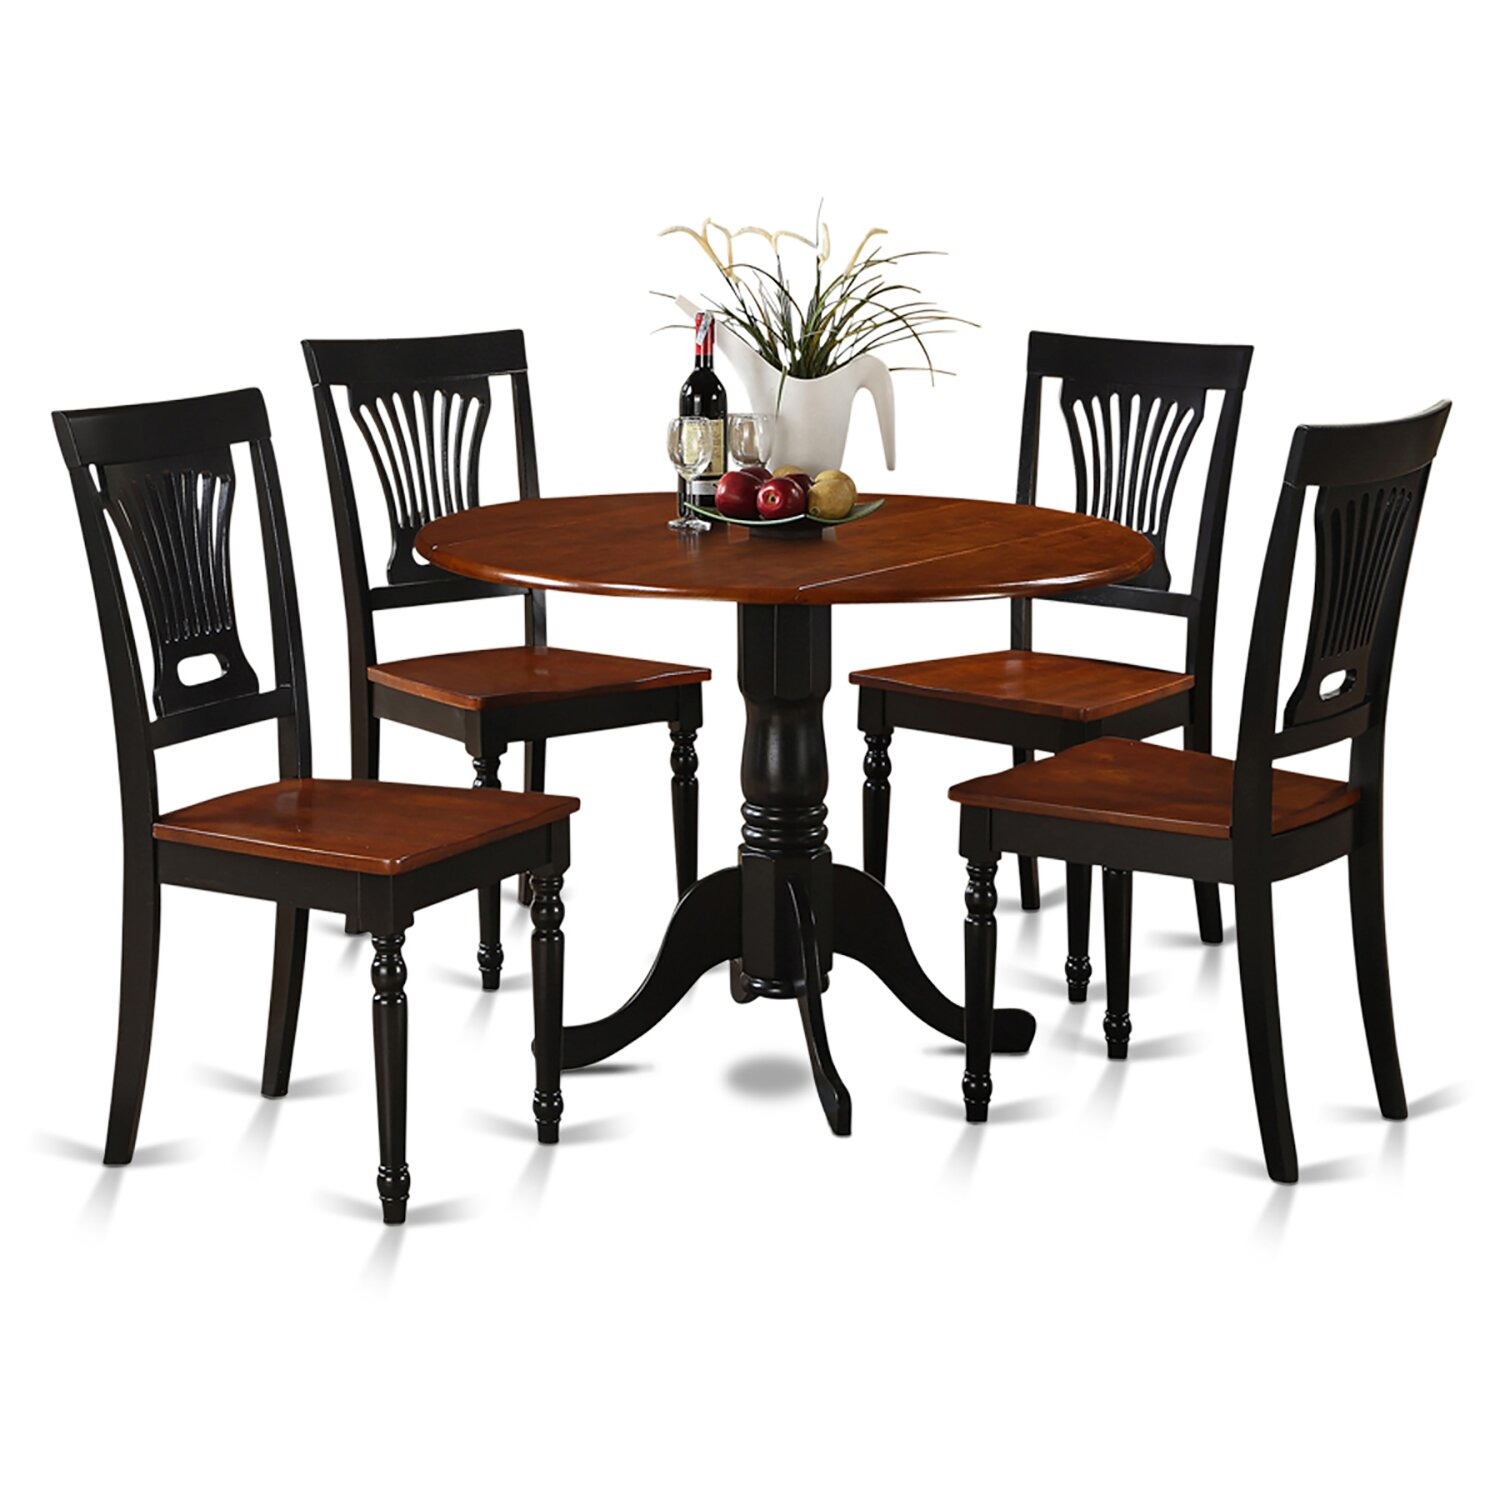 Kitchen Dinette Set: Wooden Importers Dublin 5 Piece Dining Set & Reviews